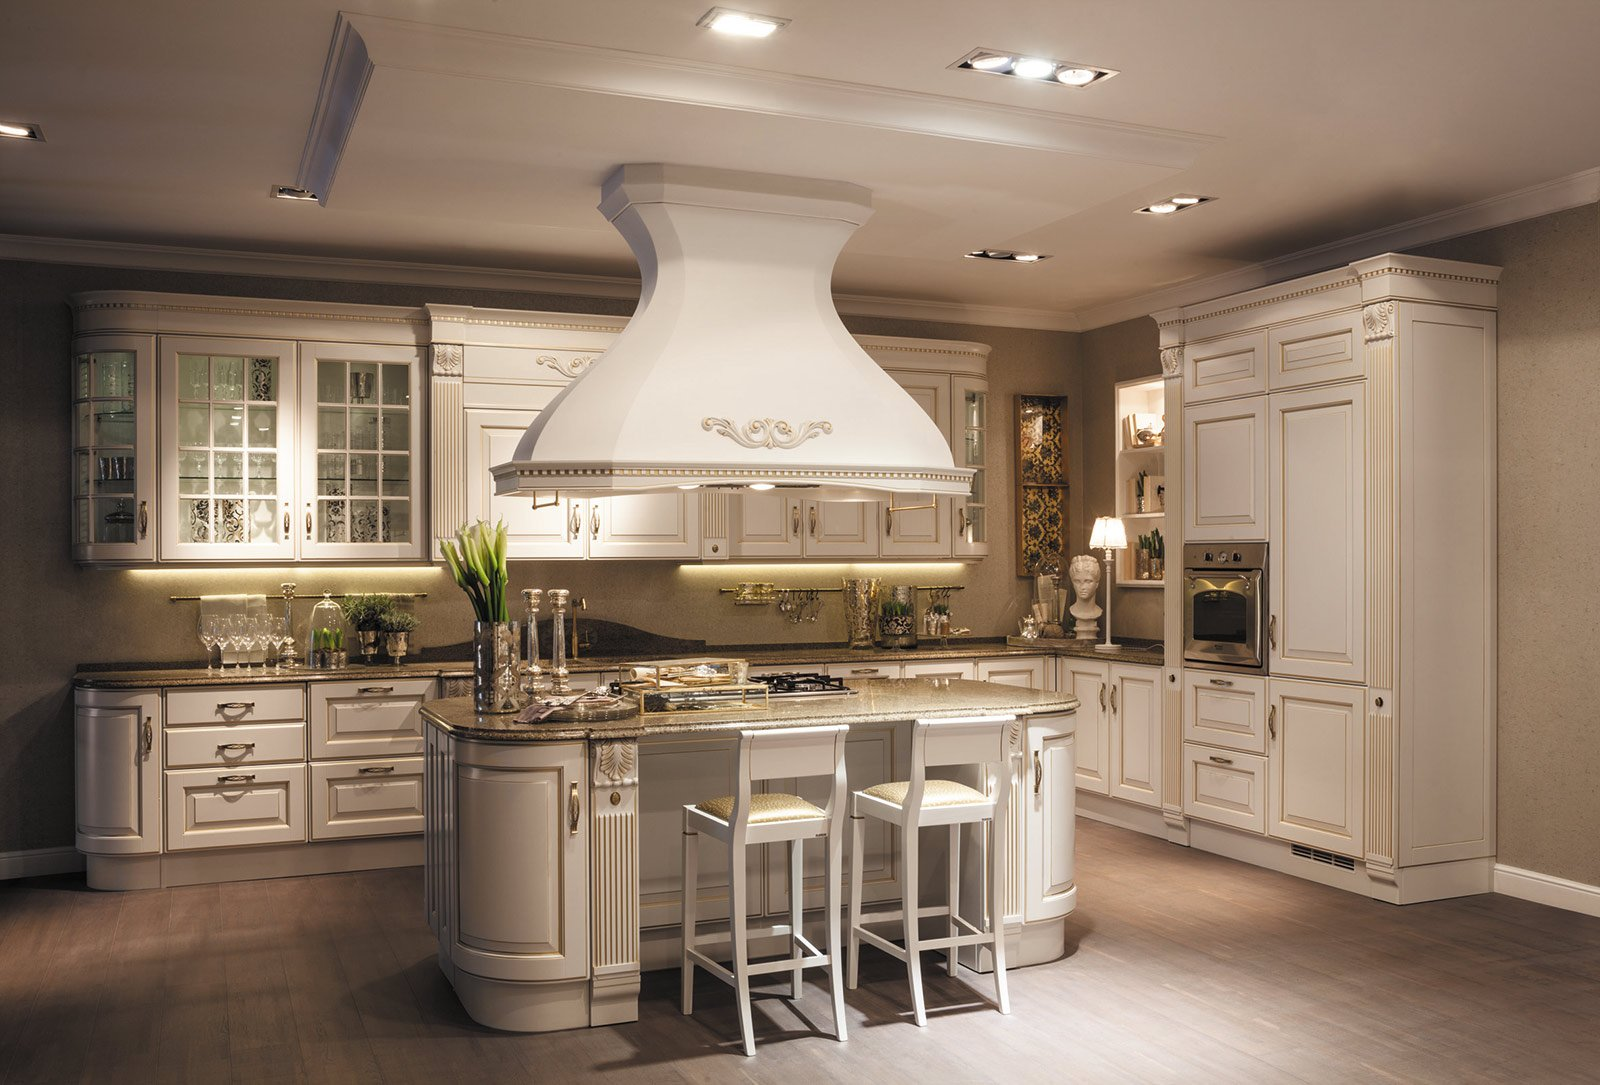 Best Cucine Scavolini Verona Pictures - Home Design Ideas 2017 ...